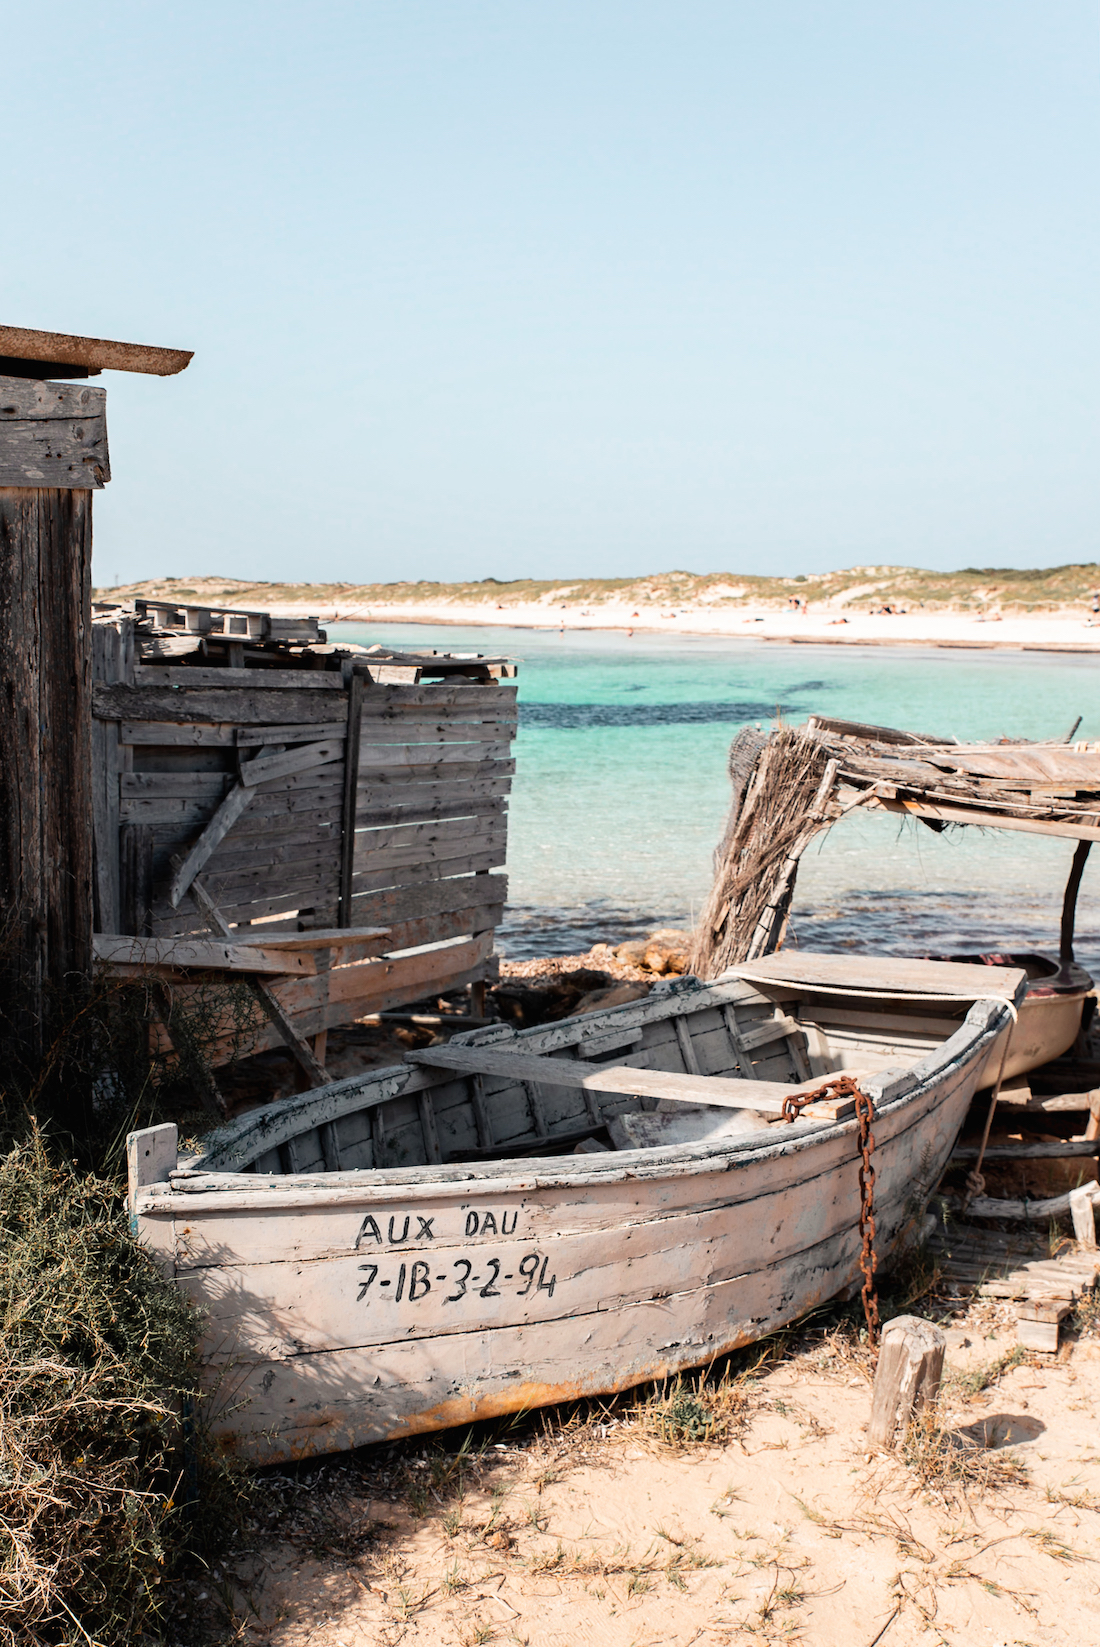 Playa Des Illettes, Formentera - Travel Guide by Ben Holbrook